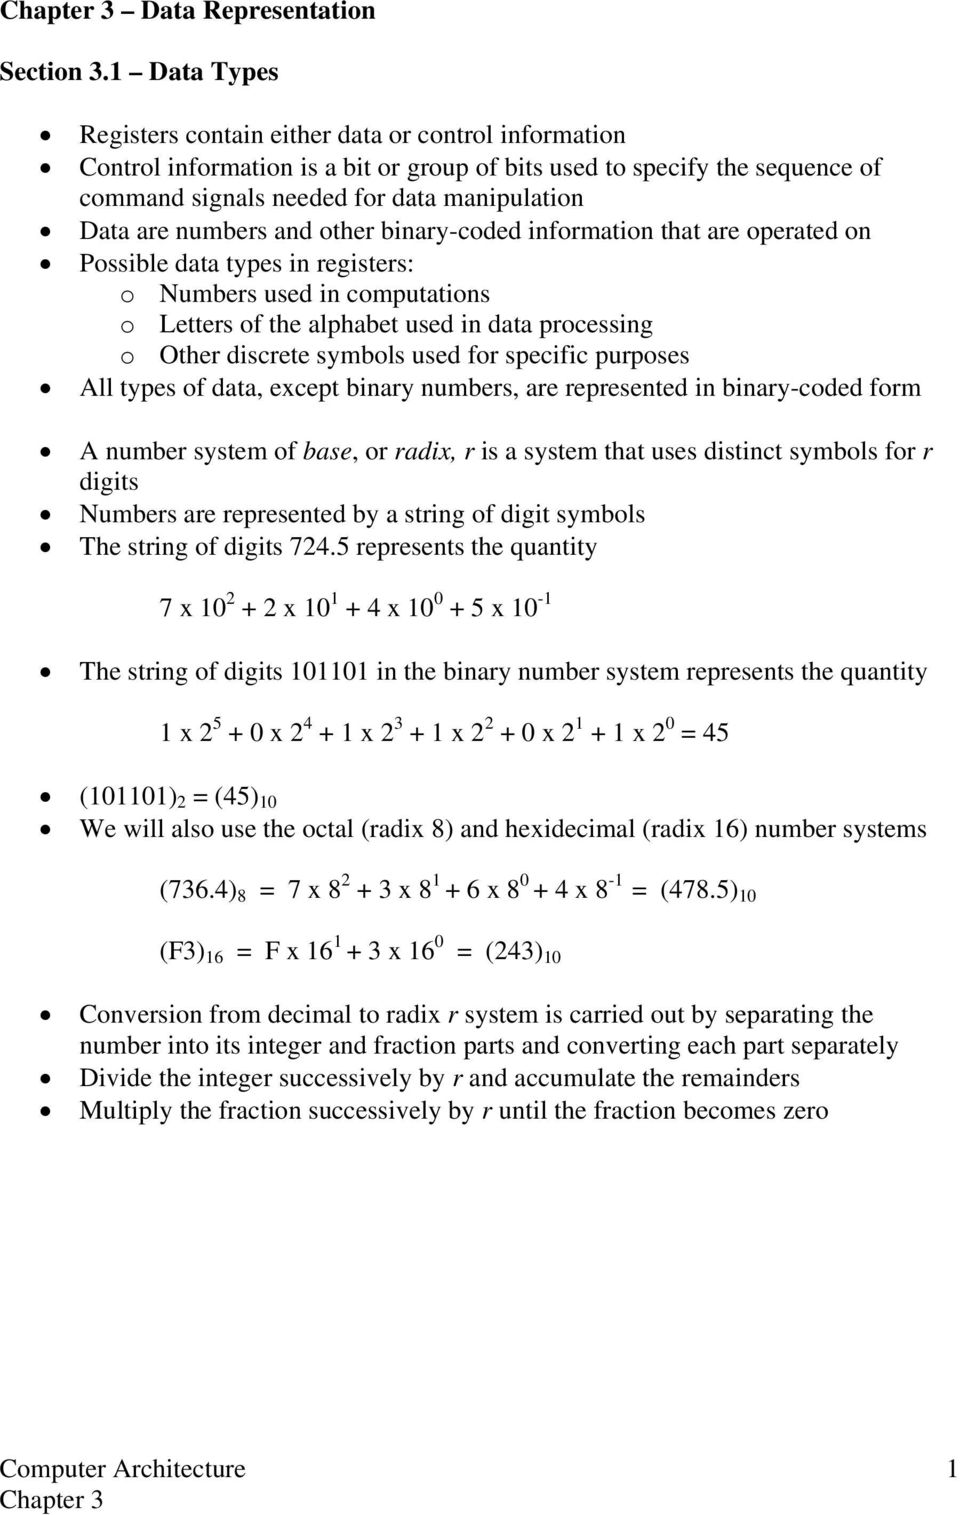 The String Of Digits In Binary Number System Represents Coded Decimal Converter Negative Logic Numbers And Other Information That Are Operated On Possible Data Types Registers